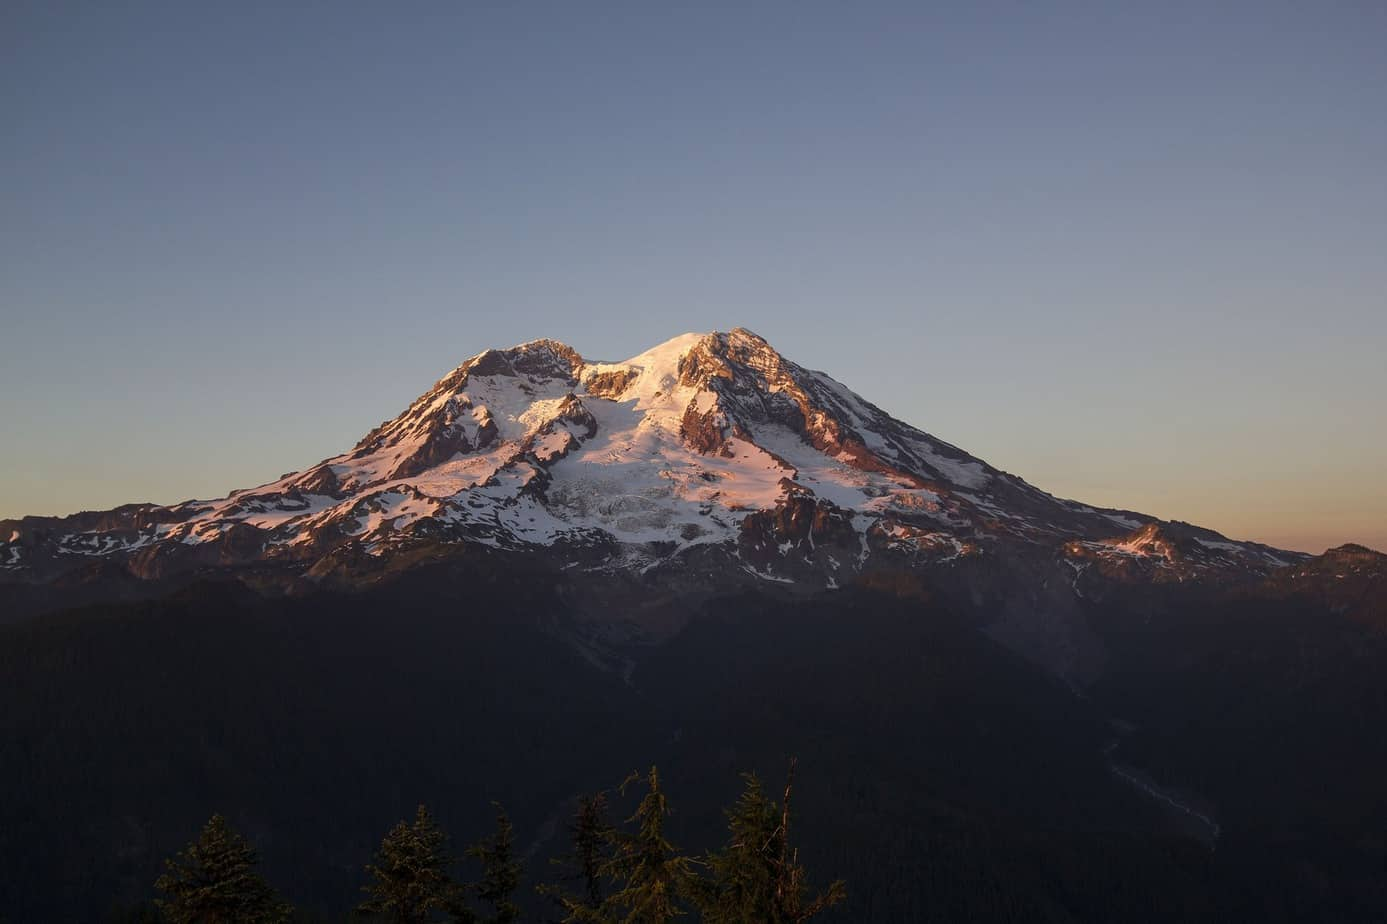 Mount Rainier: Mountaineering, Hiking and Things to do